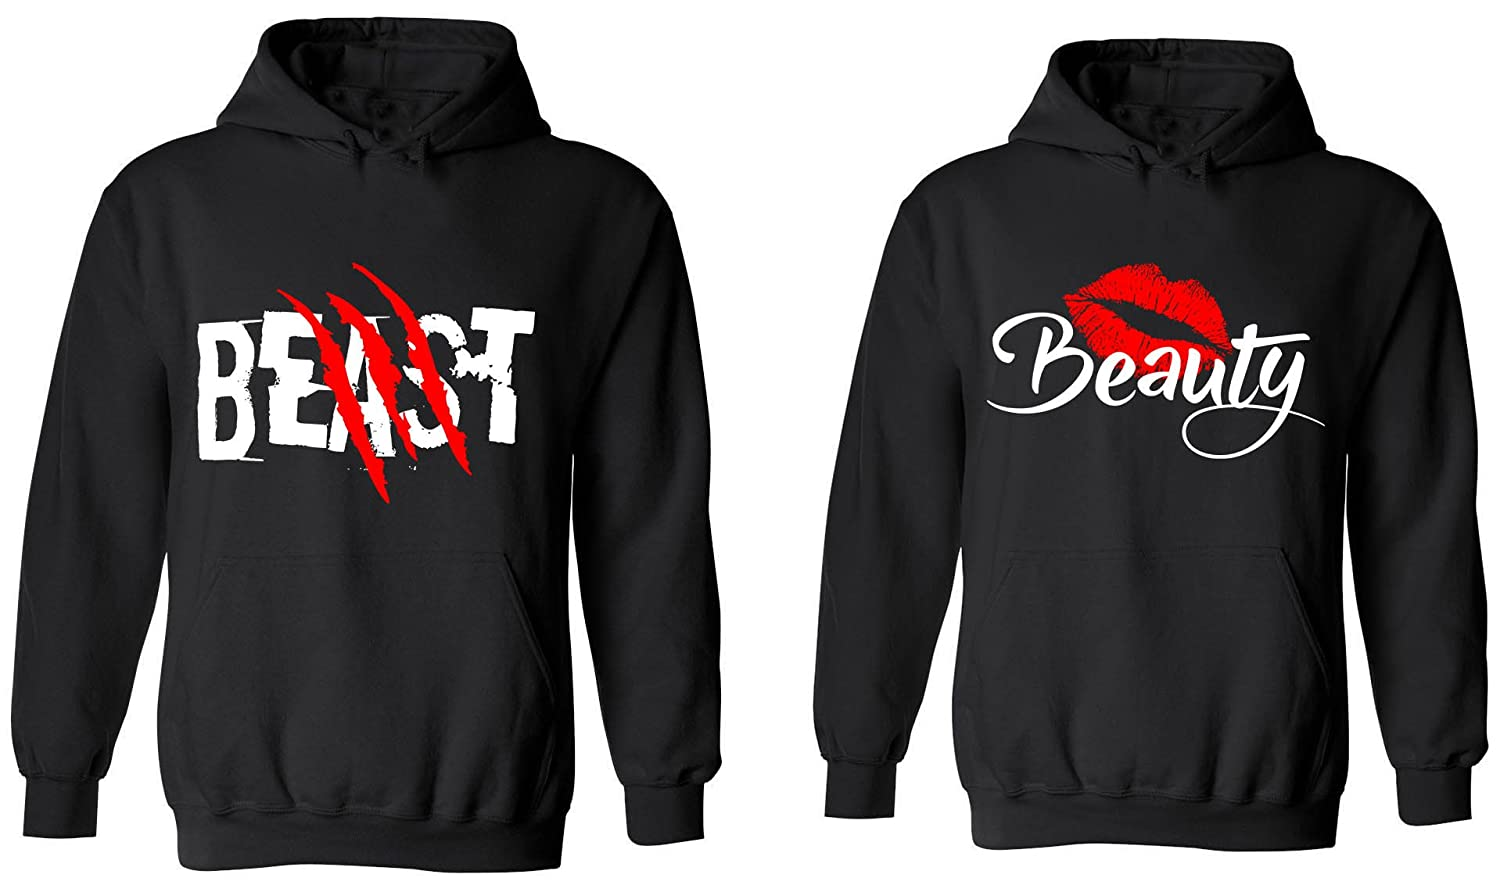 a333d31466 Amazon.com: Beast & Beauty - Matching Couple Hoodies - His and Her Sweaters:  Clothing